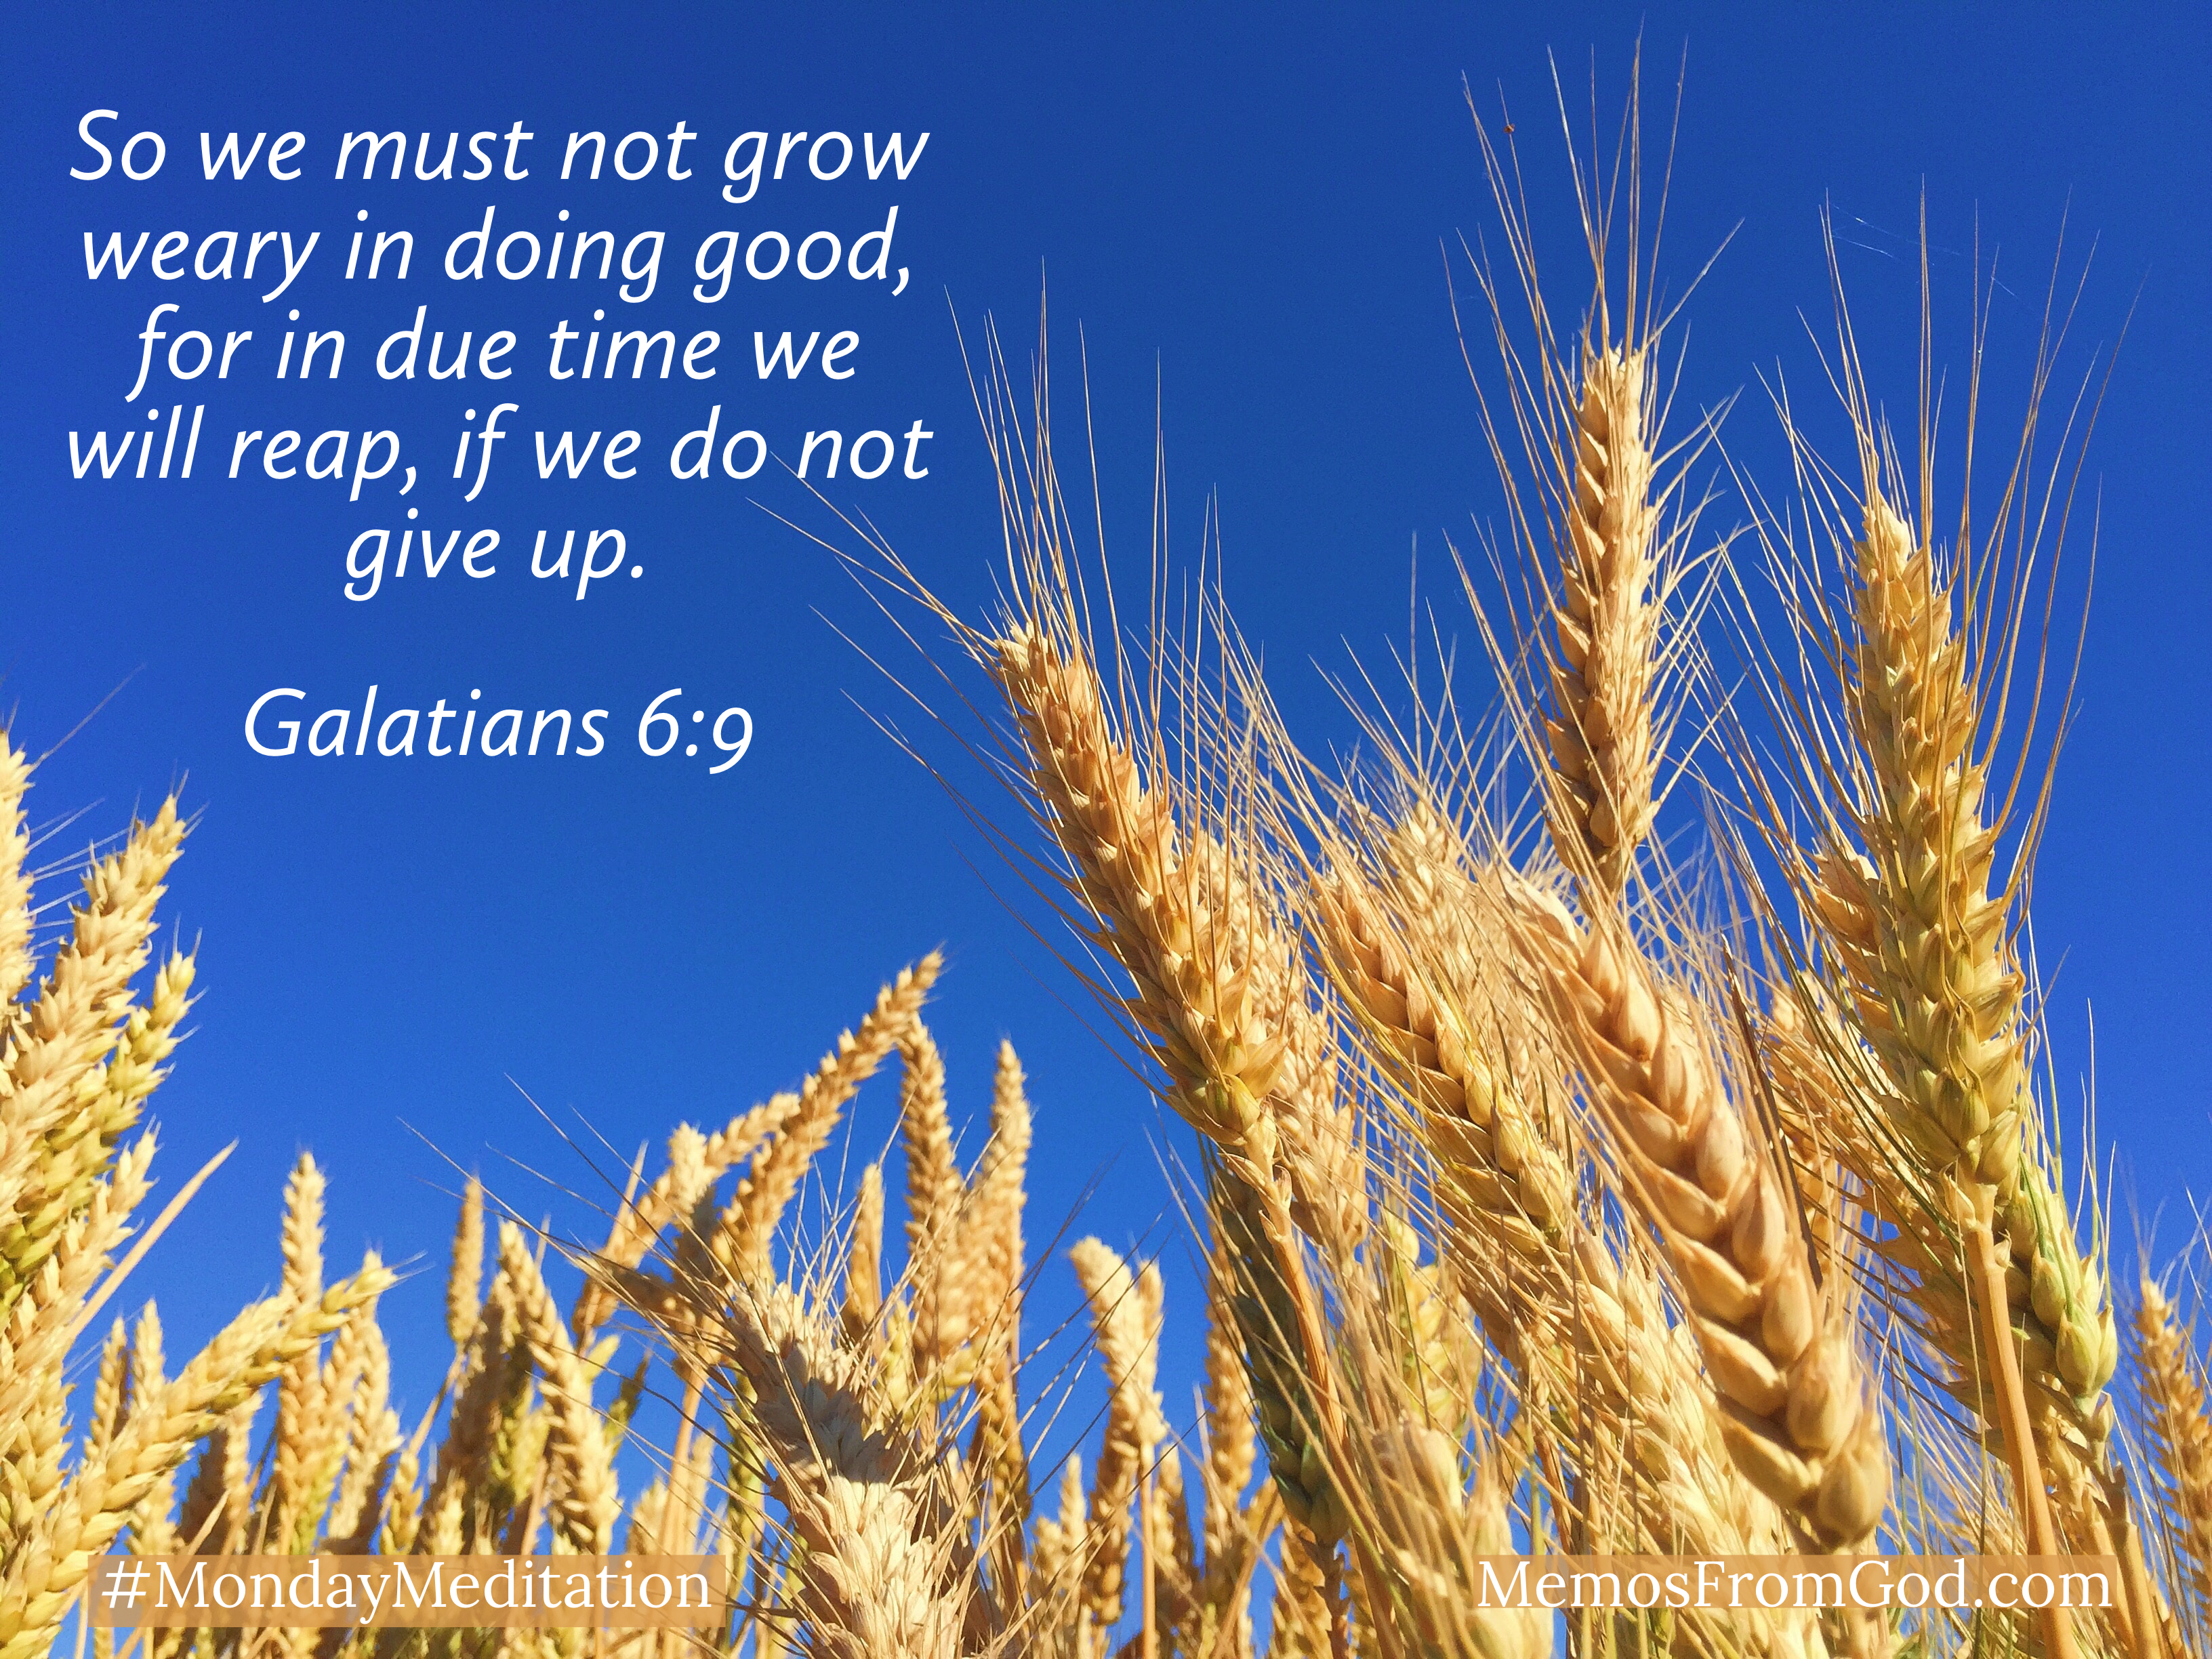 Golden wheat against a bright blue sky. Caption: So we must not grow weary in doing good, for in due time we will reap, if we do not give up. Galatians 6:9